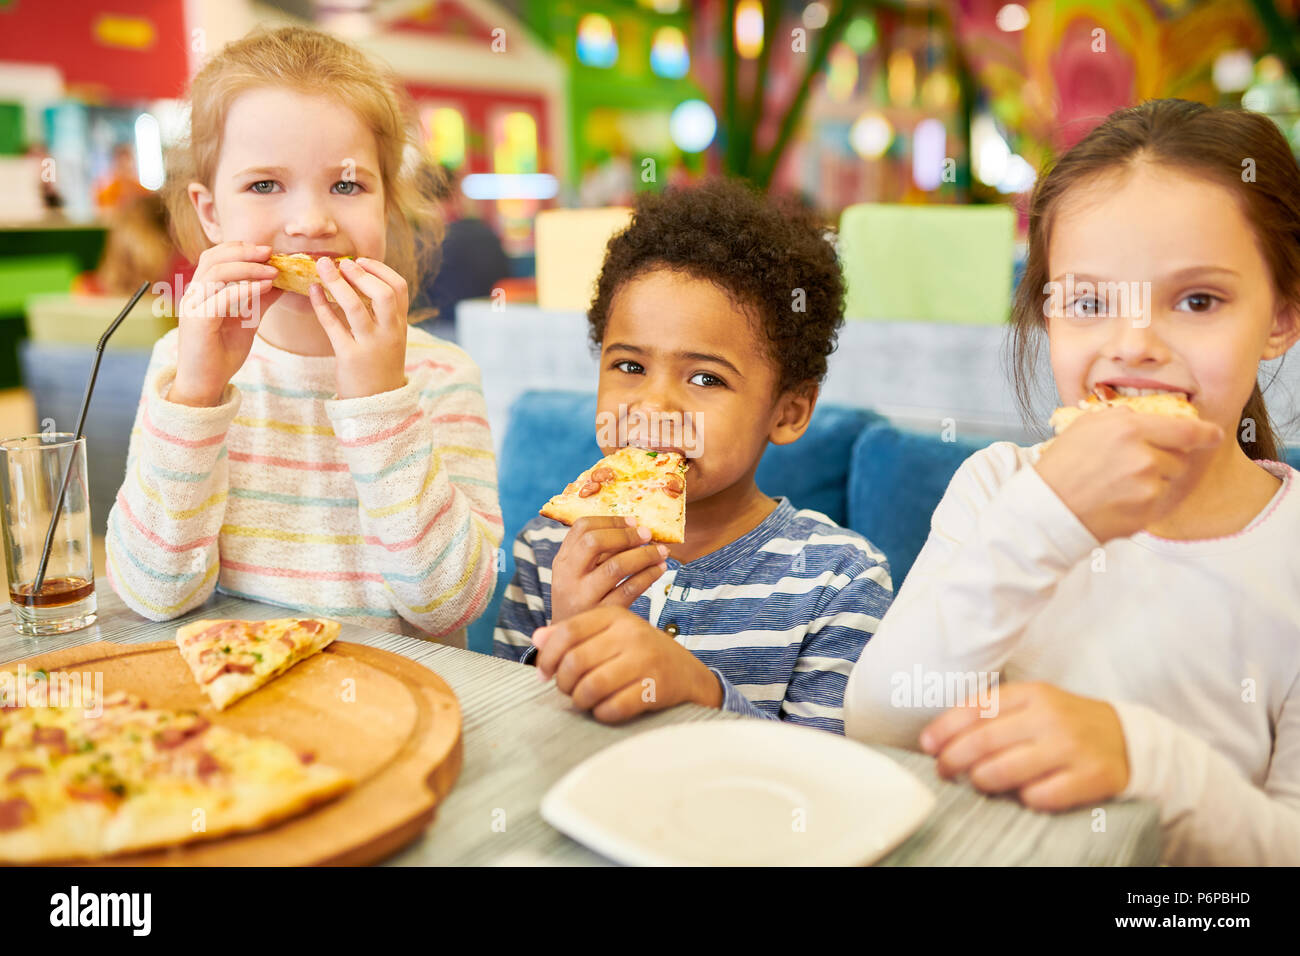 Children Eating Pizza in Cafe - Stock Image